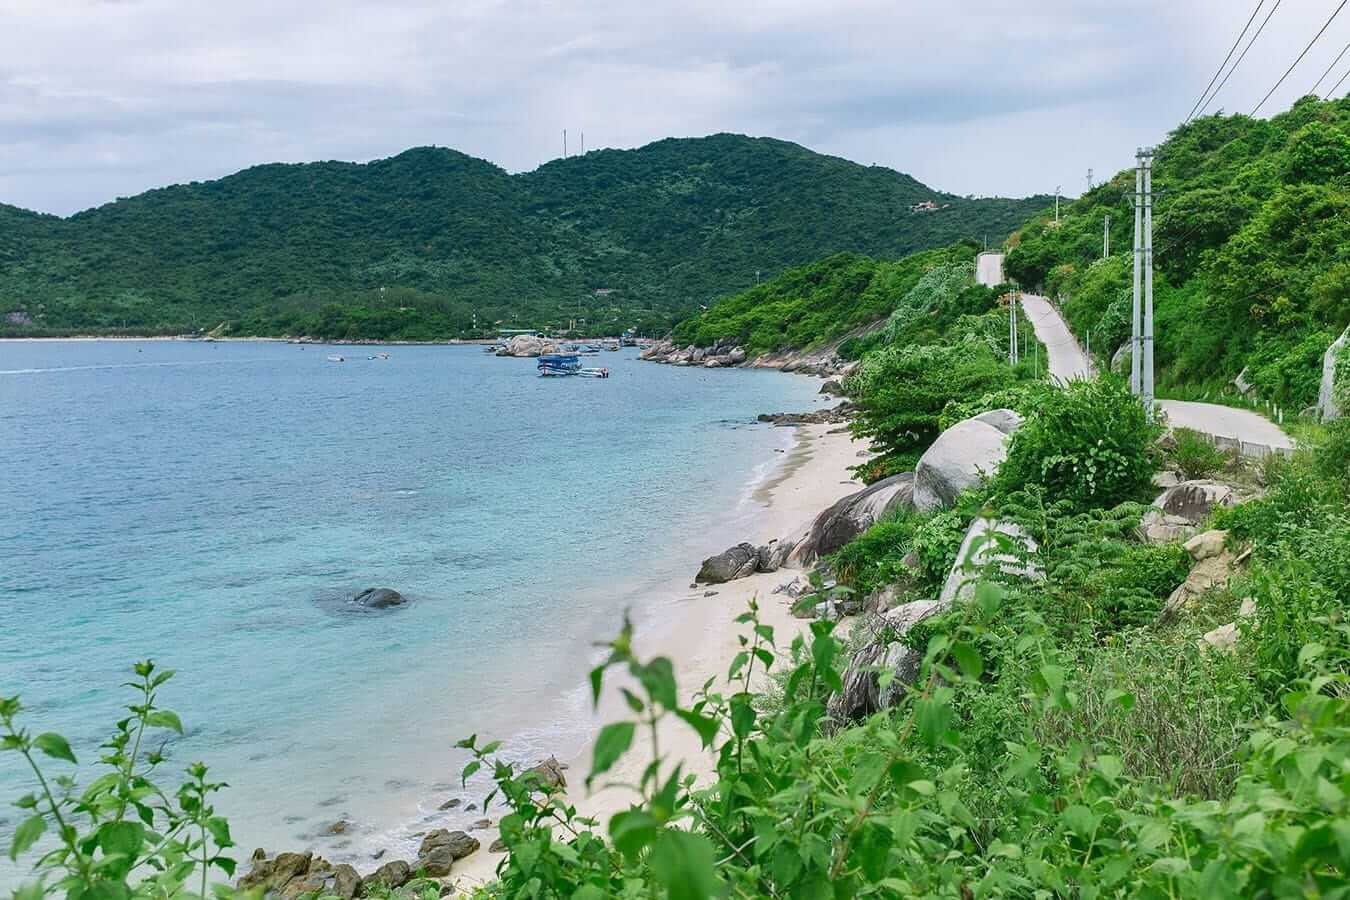 Coast road and deserted beaches, Cham Islands